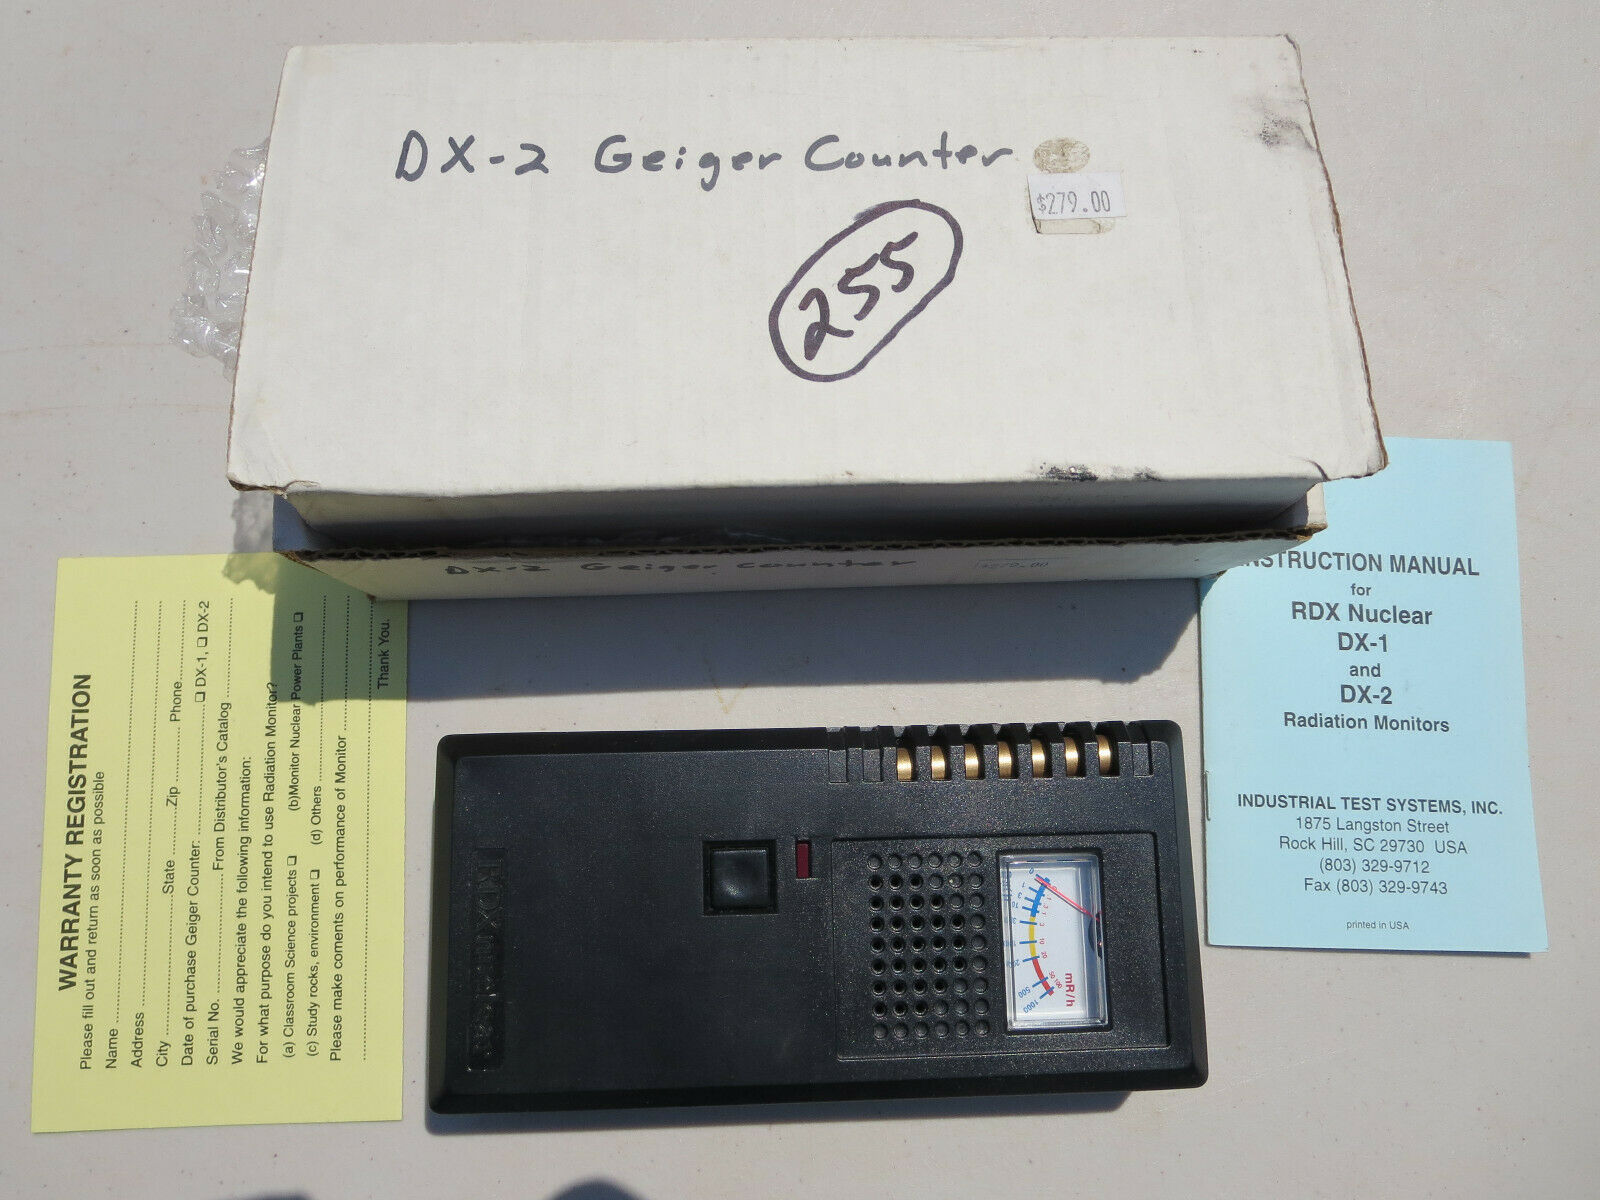 s l1600 - 255  DX-2 GEIGER COUNTER FROM RDX NUCLEAR.  STORE DEMO UNIT.  MADE IN USA.